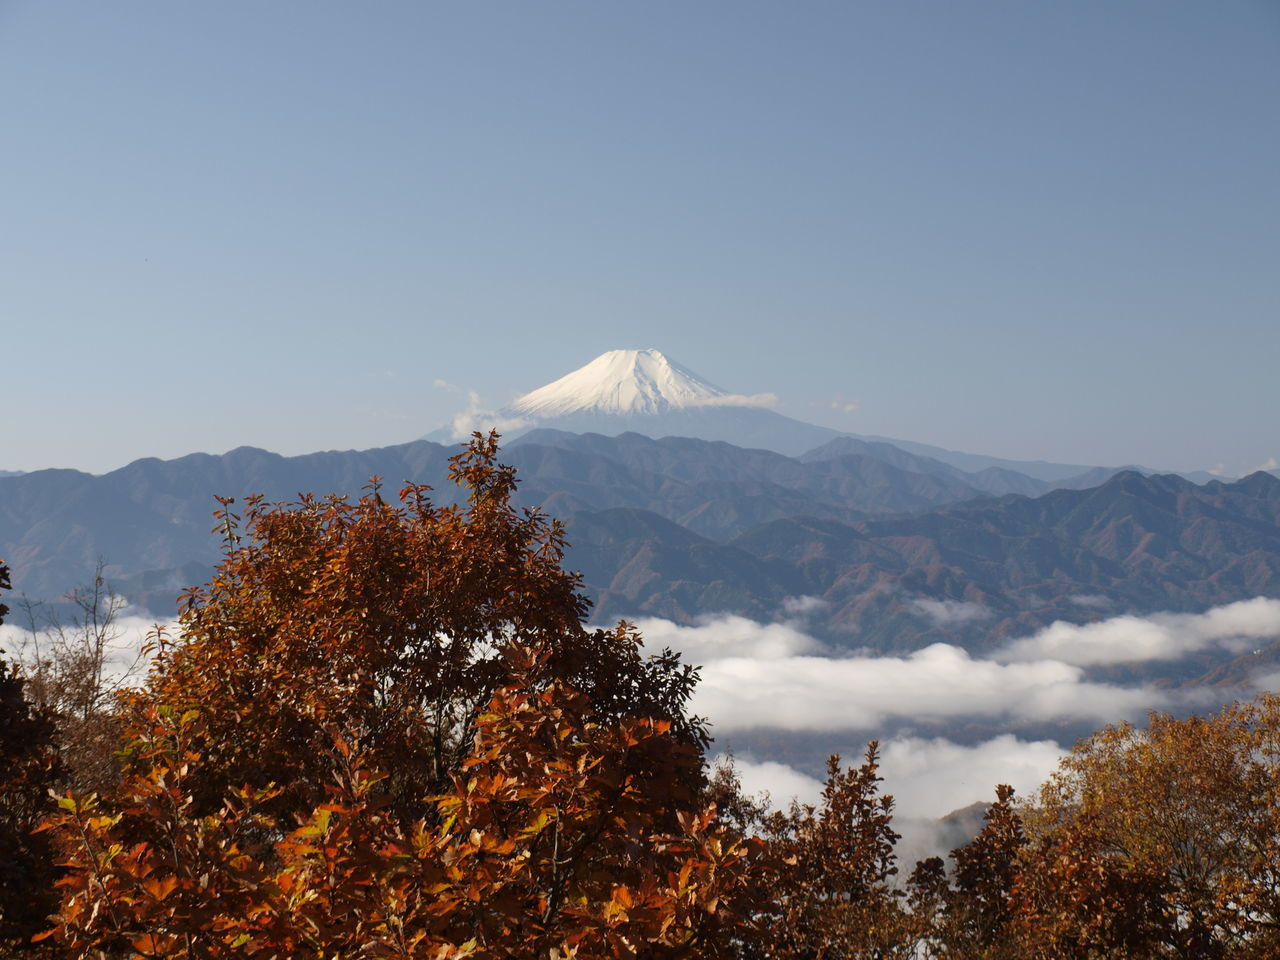 Trekking Takao Mountain Yellow Mountain Jinba Mountain Beautiful Hiking Red Japan Outdoors Sightseeing Momijigari Autumn Colors Momiji Mt.Fuji Autumn Autumn Leaves Countryside Nature Walking Sky Tree Green Activity